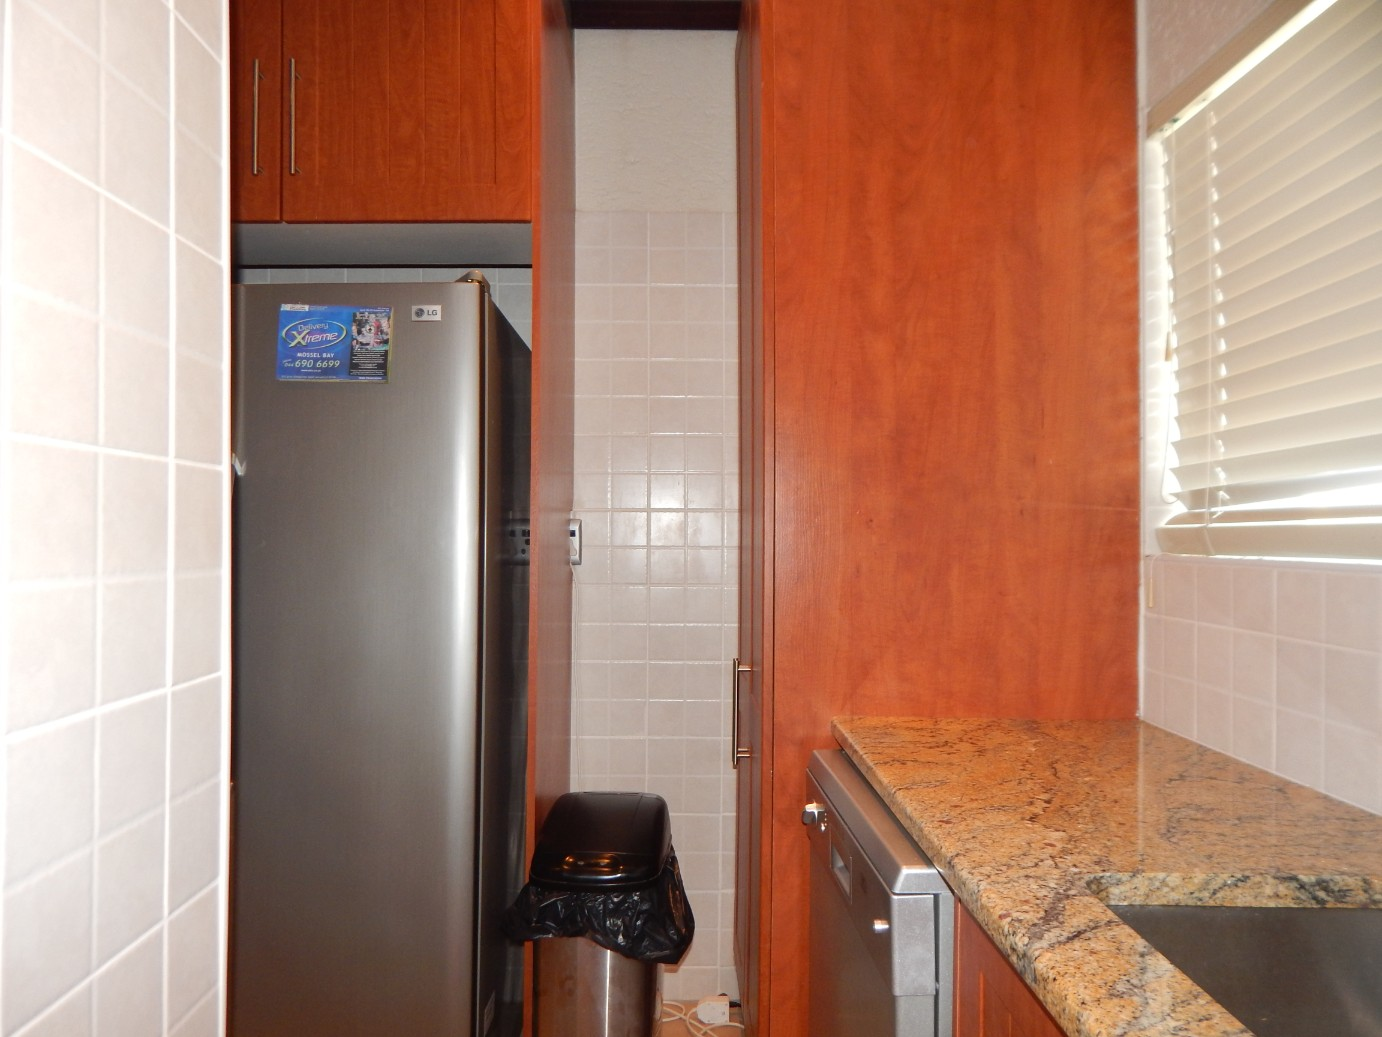 3 Bedroom Apartment for sale in Diaz Beach ENT0043723 : photo#12